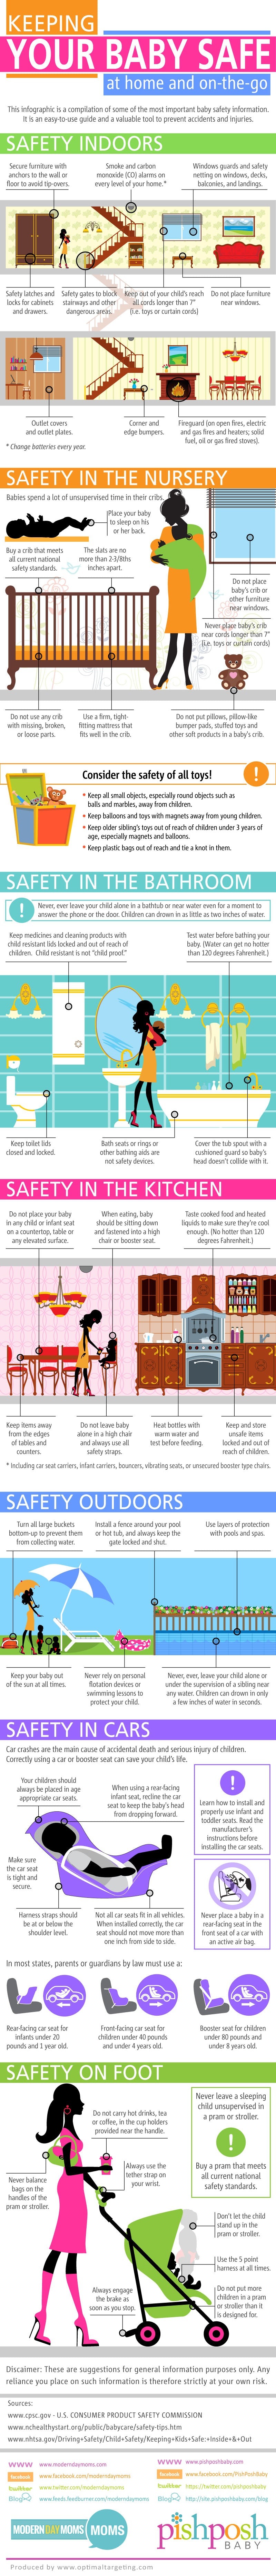 Keeping Your Baby Safe <infographic>